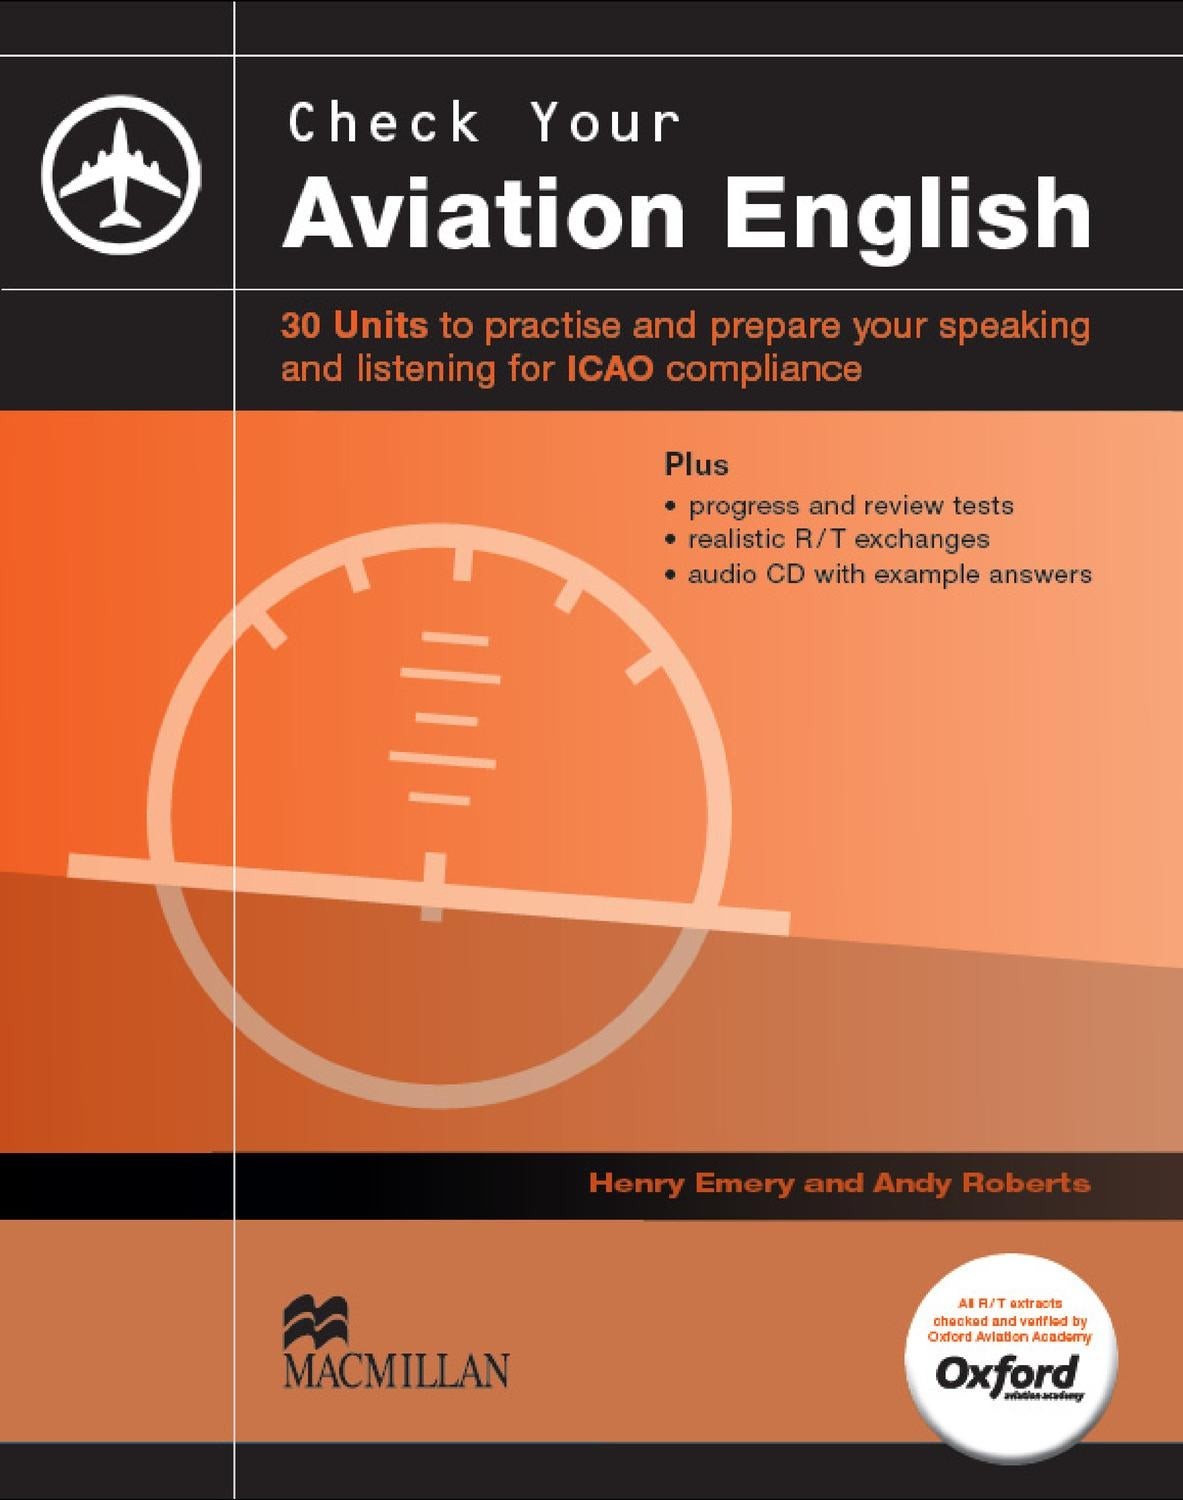 Aviation English Coursebook Overview - YouTube